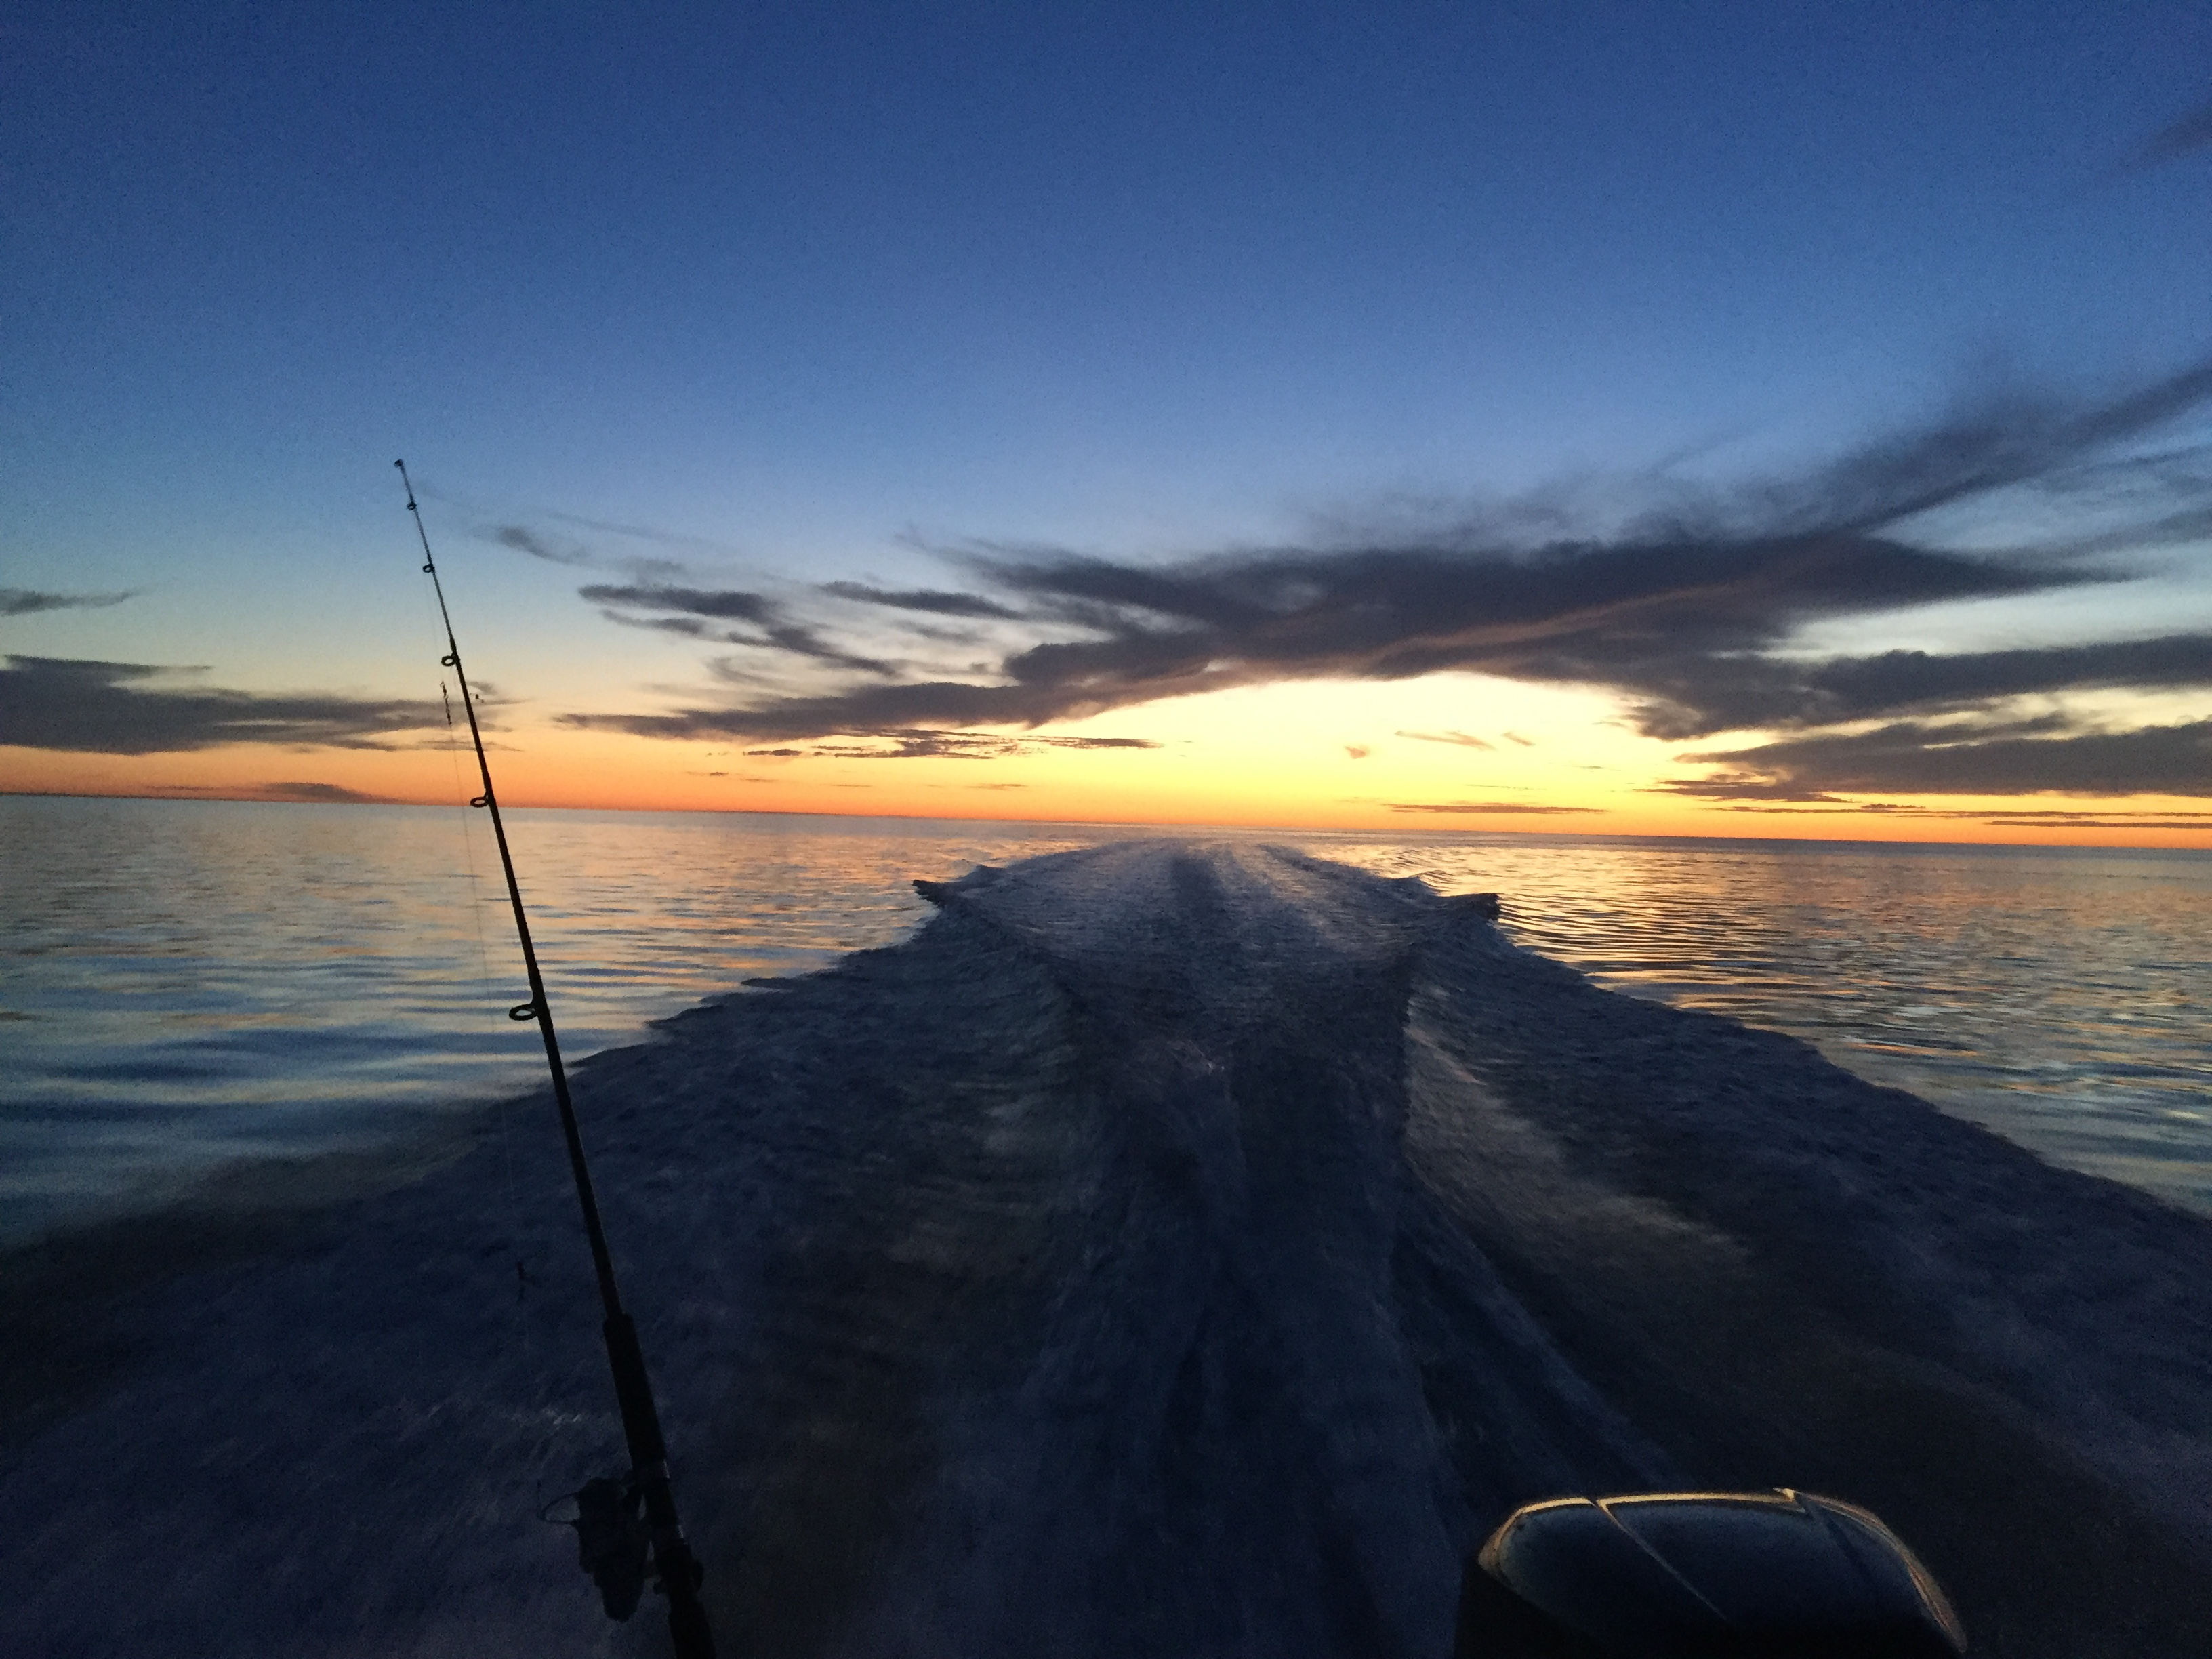 View of the sunset from Rowey's boat